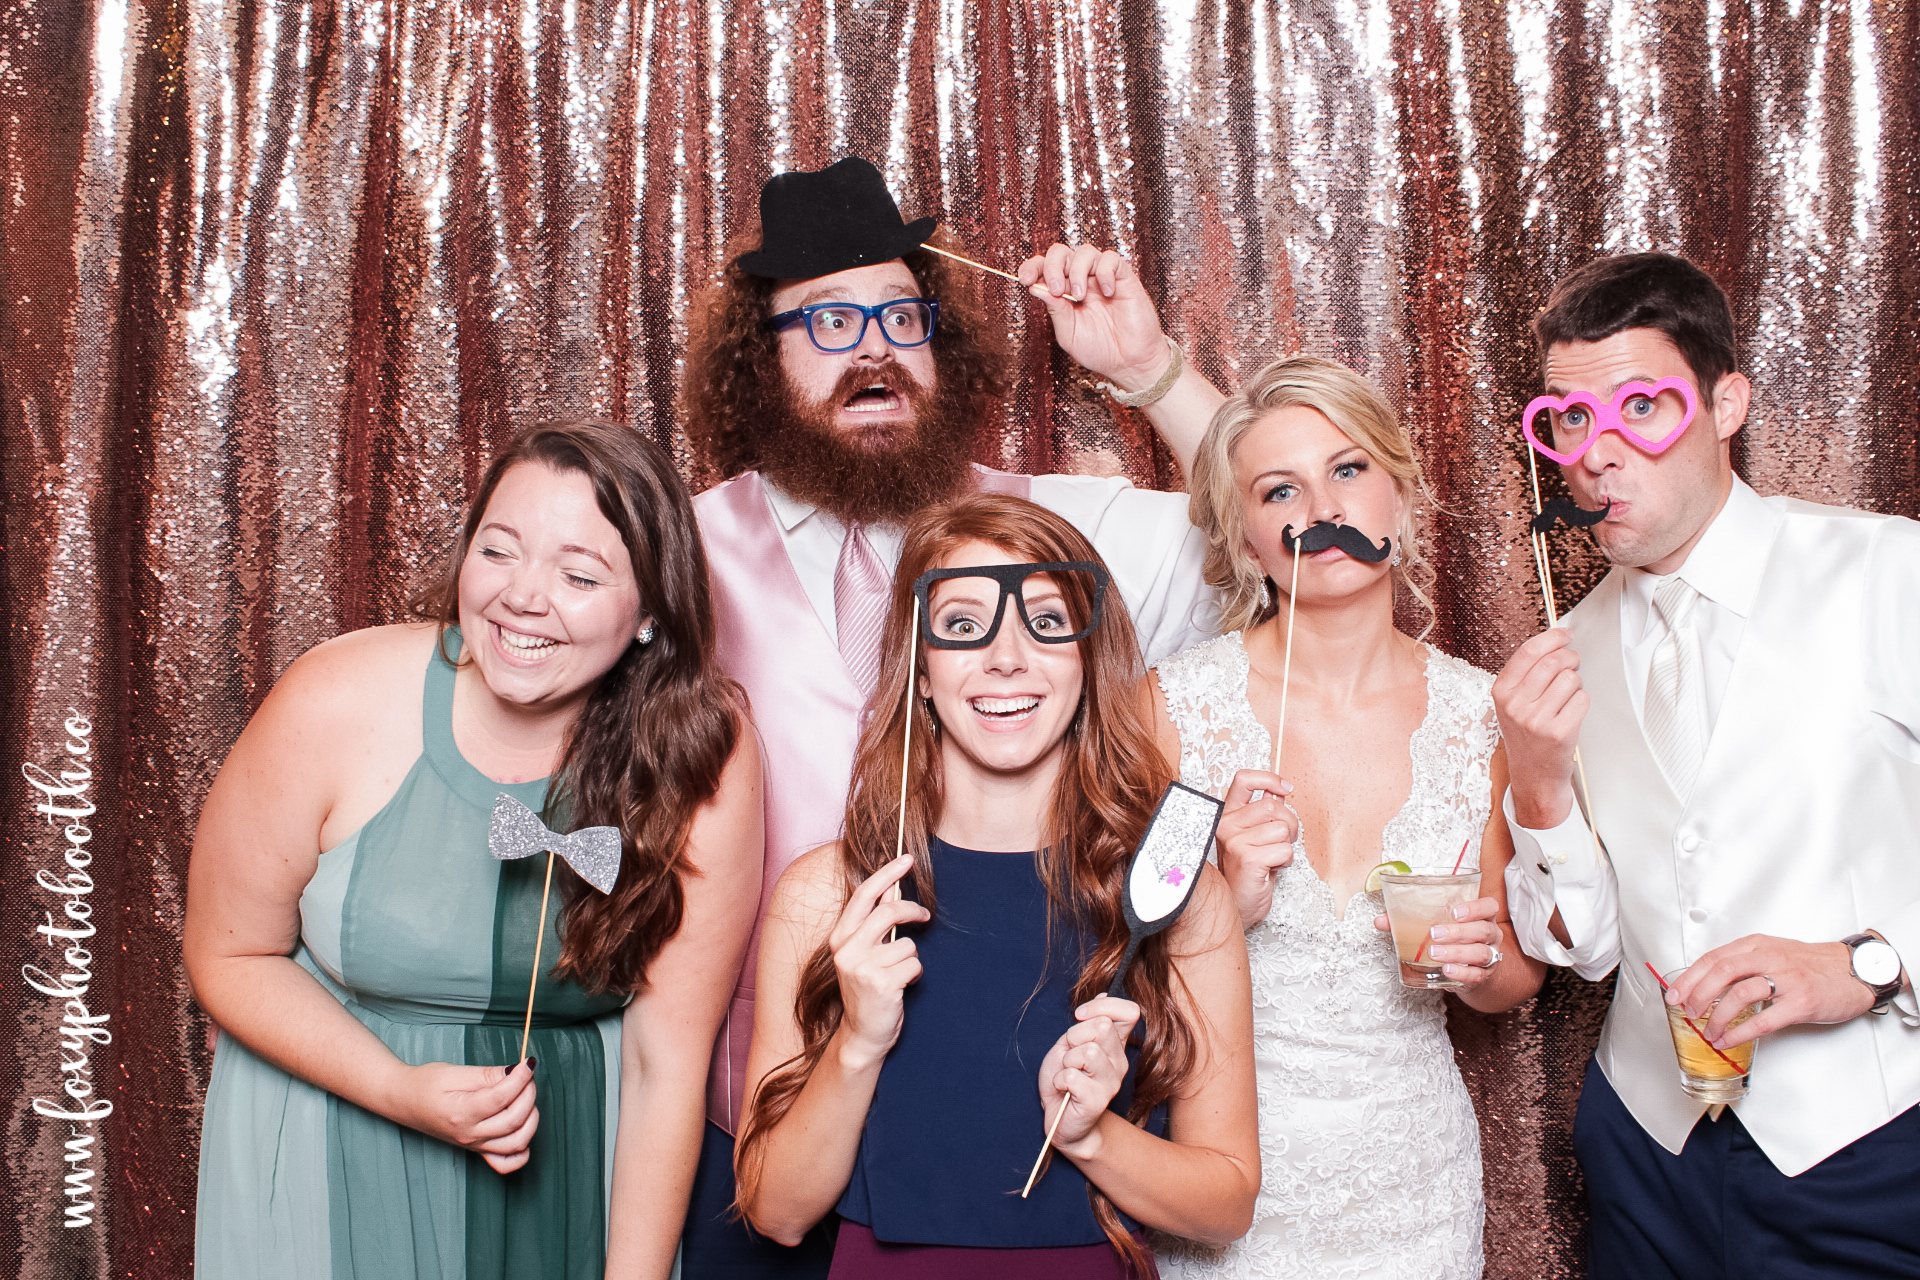 Erin_Will_Photobooth2016-9-5-7982C